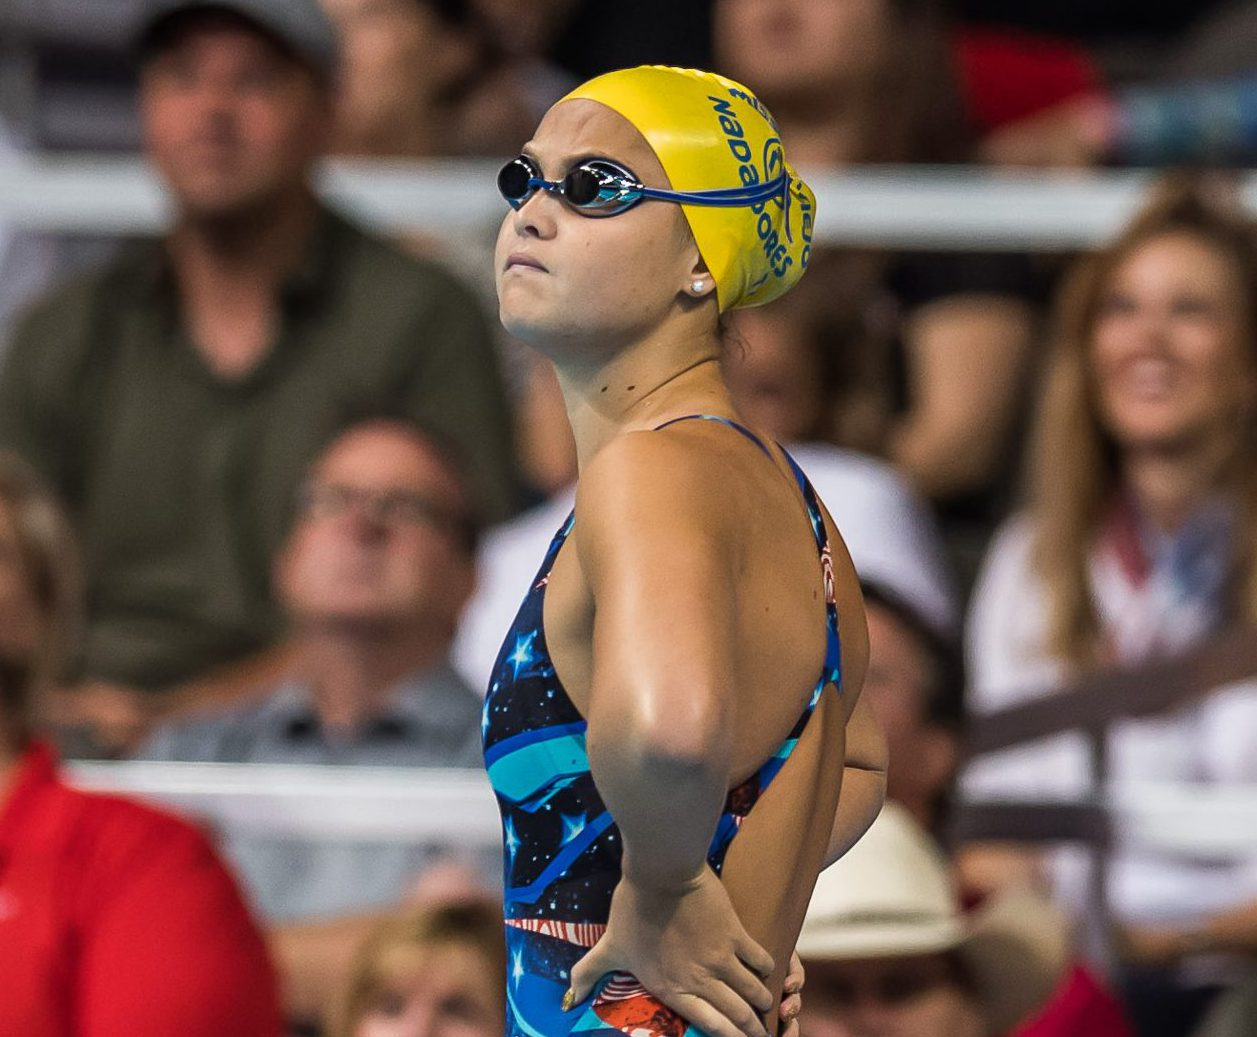 Katie McLaughling Tops 200 Free At Day Two Of 2017 Speedo Grand